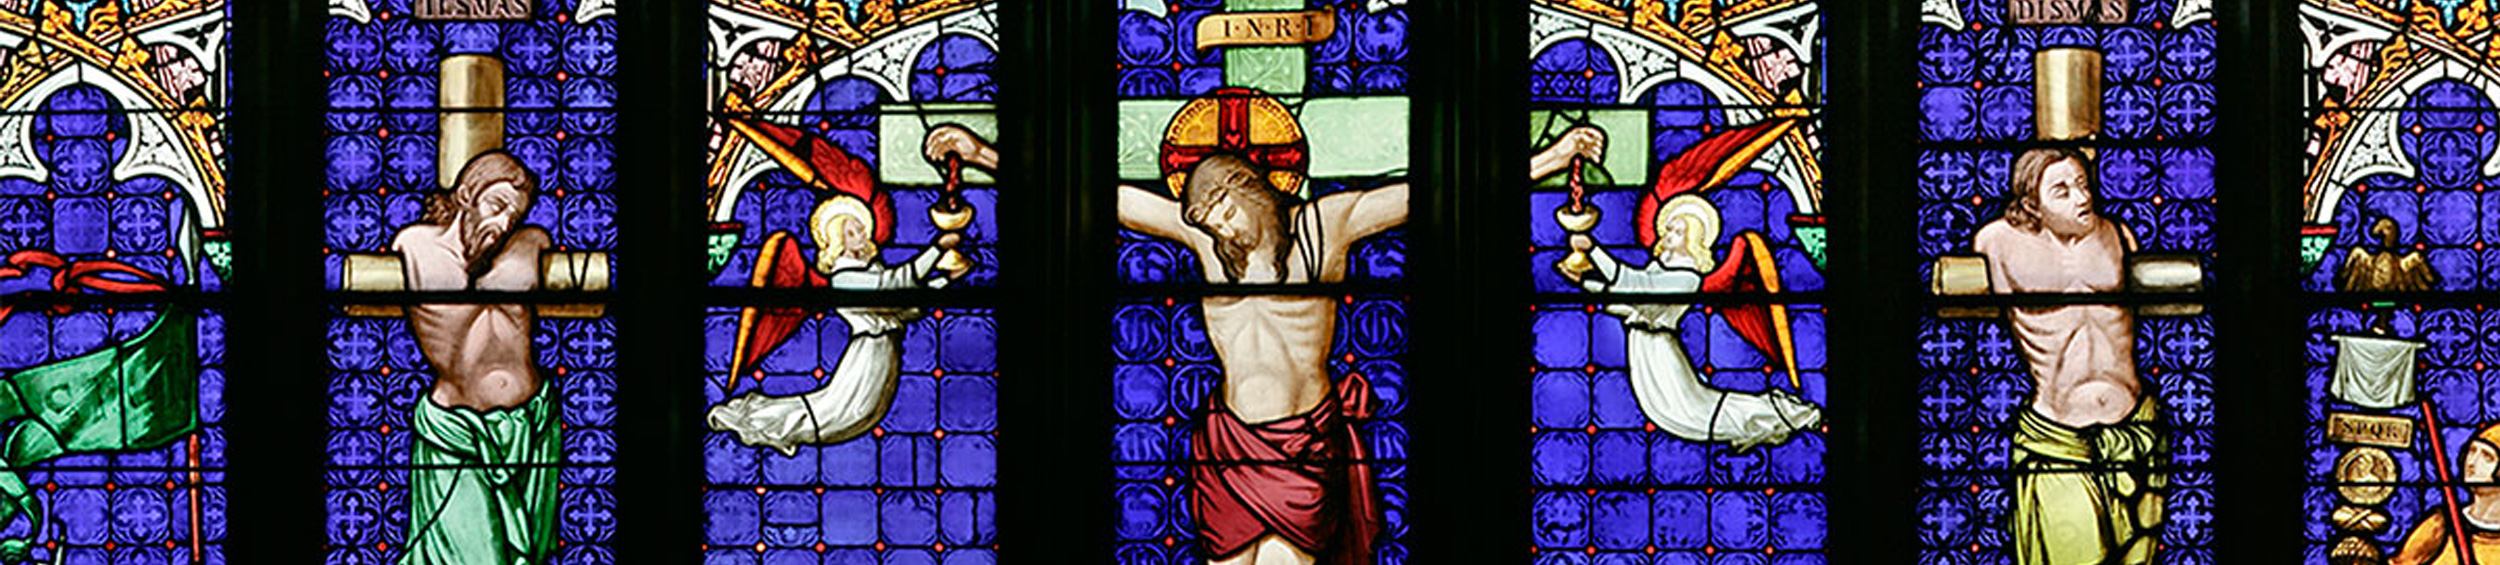 Stained glass window of Jesus on the Cross